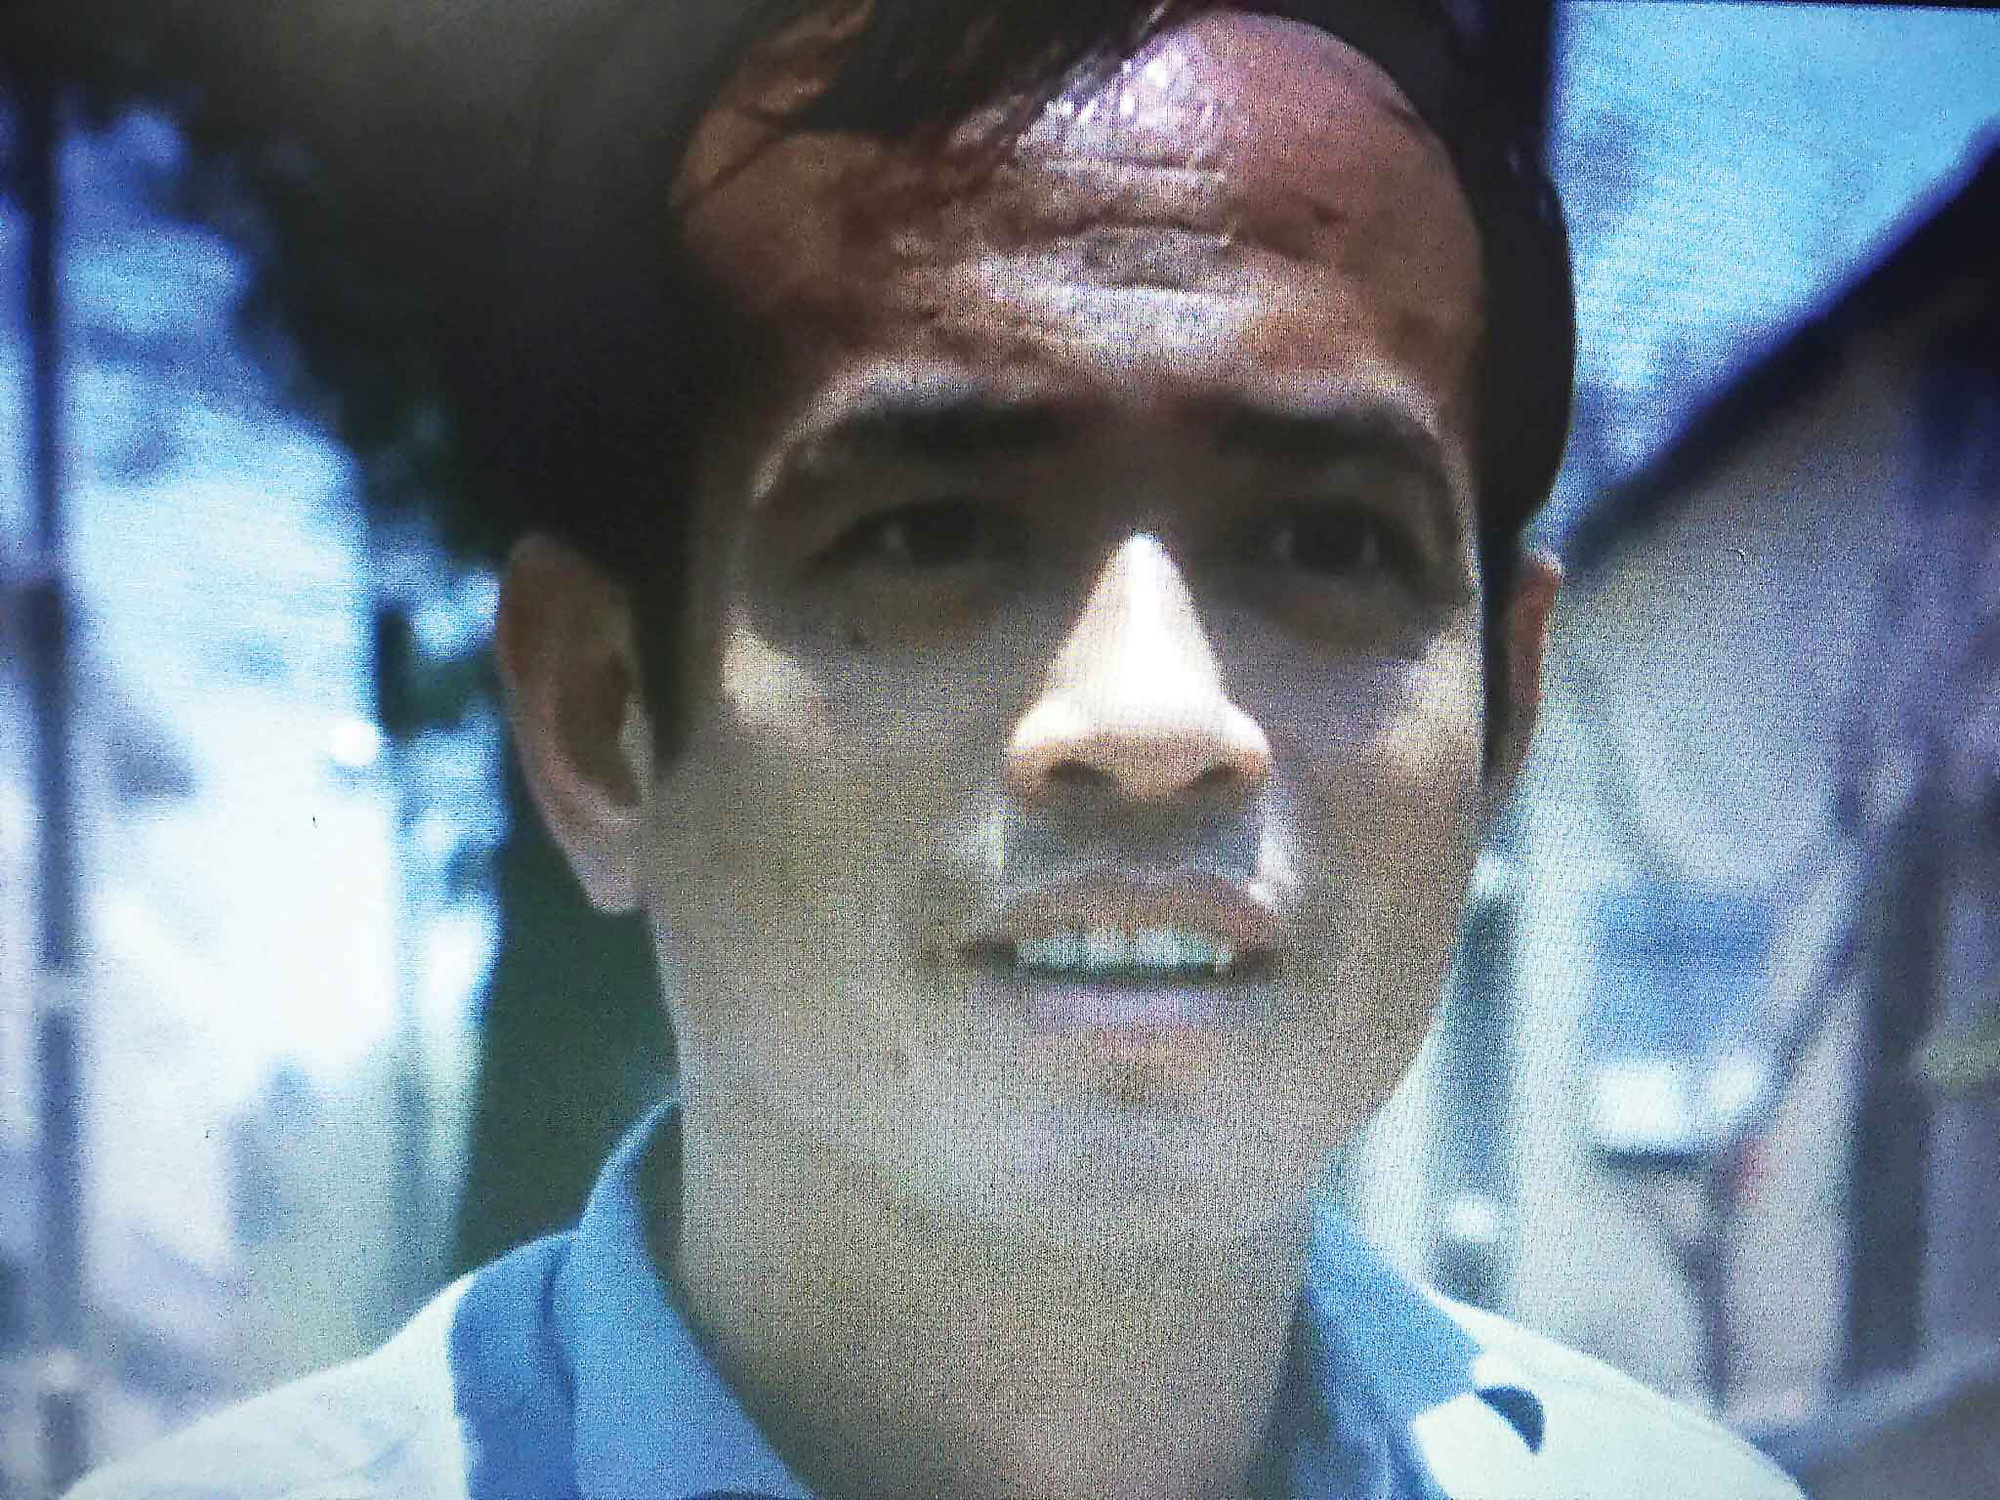 Star actor Le Quynh as captured in this screenshot of Raoul Coutard's 'Hoa-Binh' (1970)